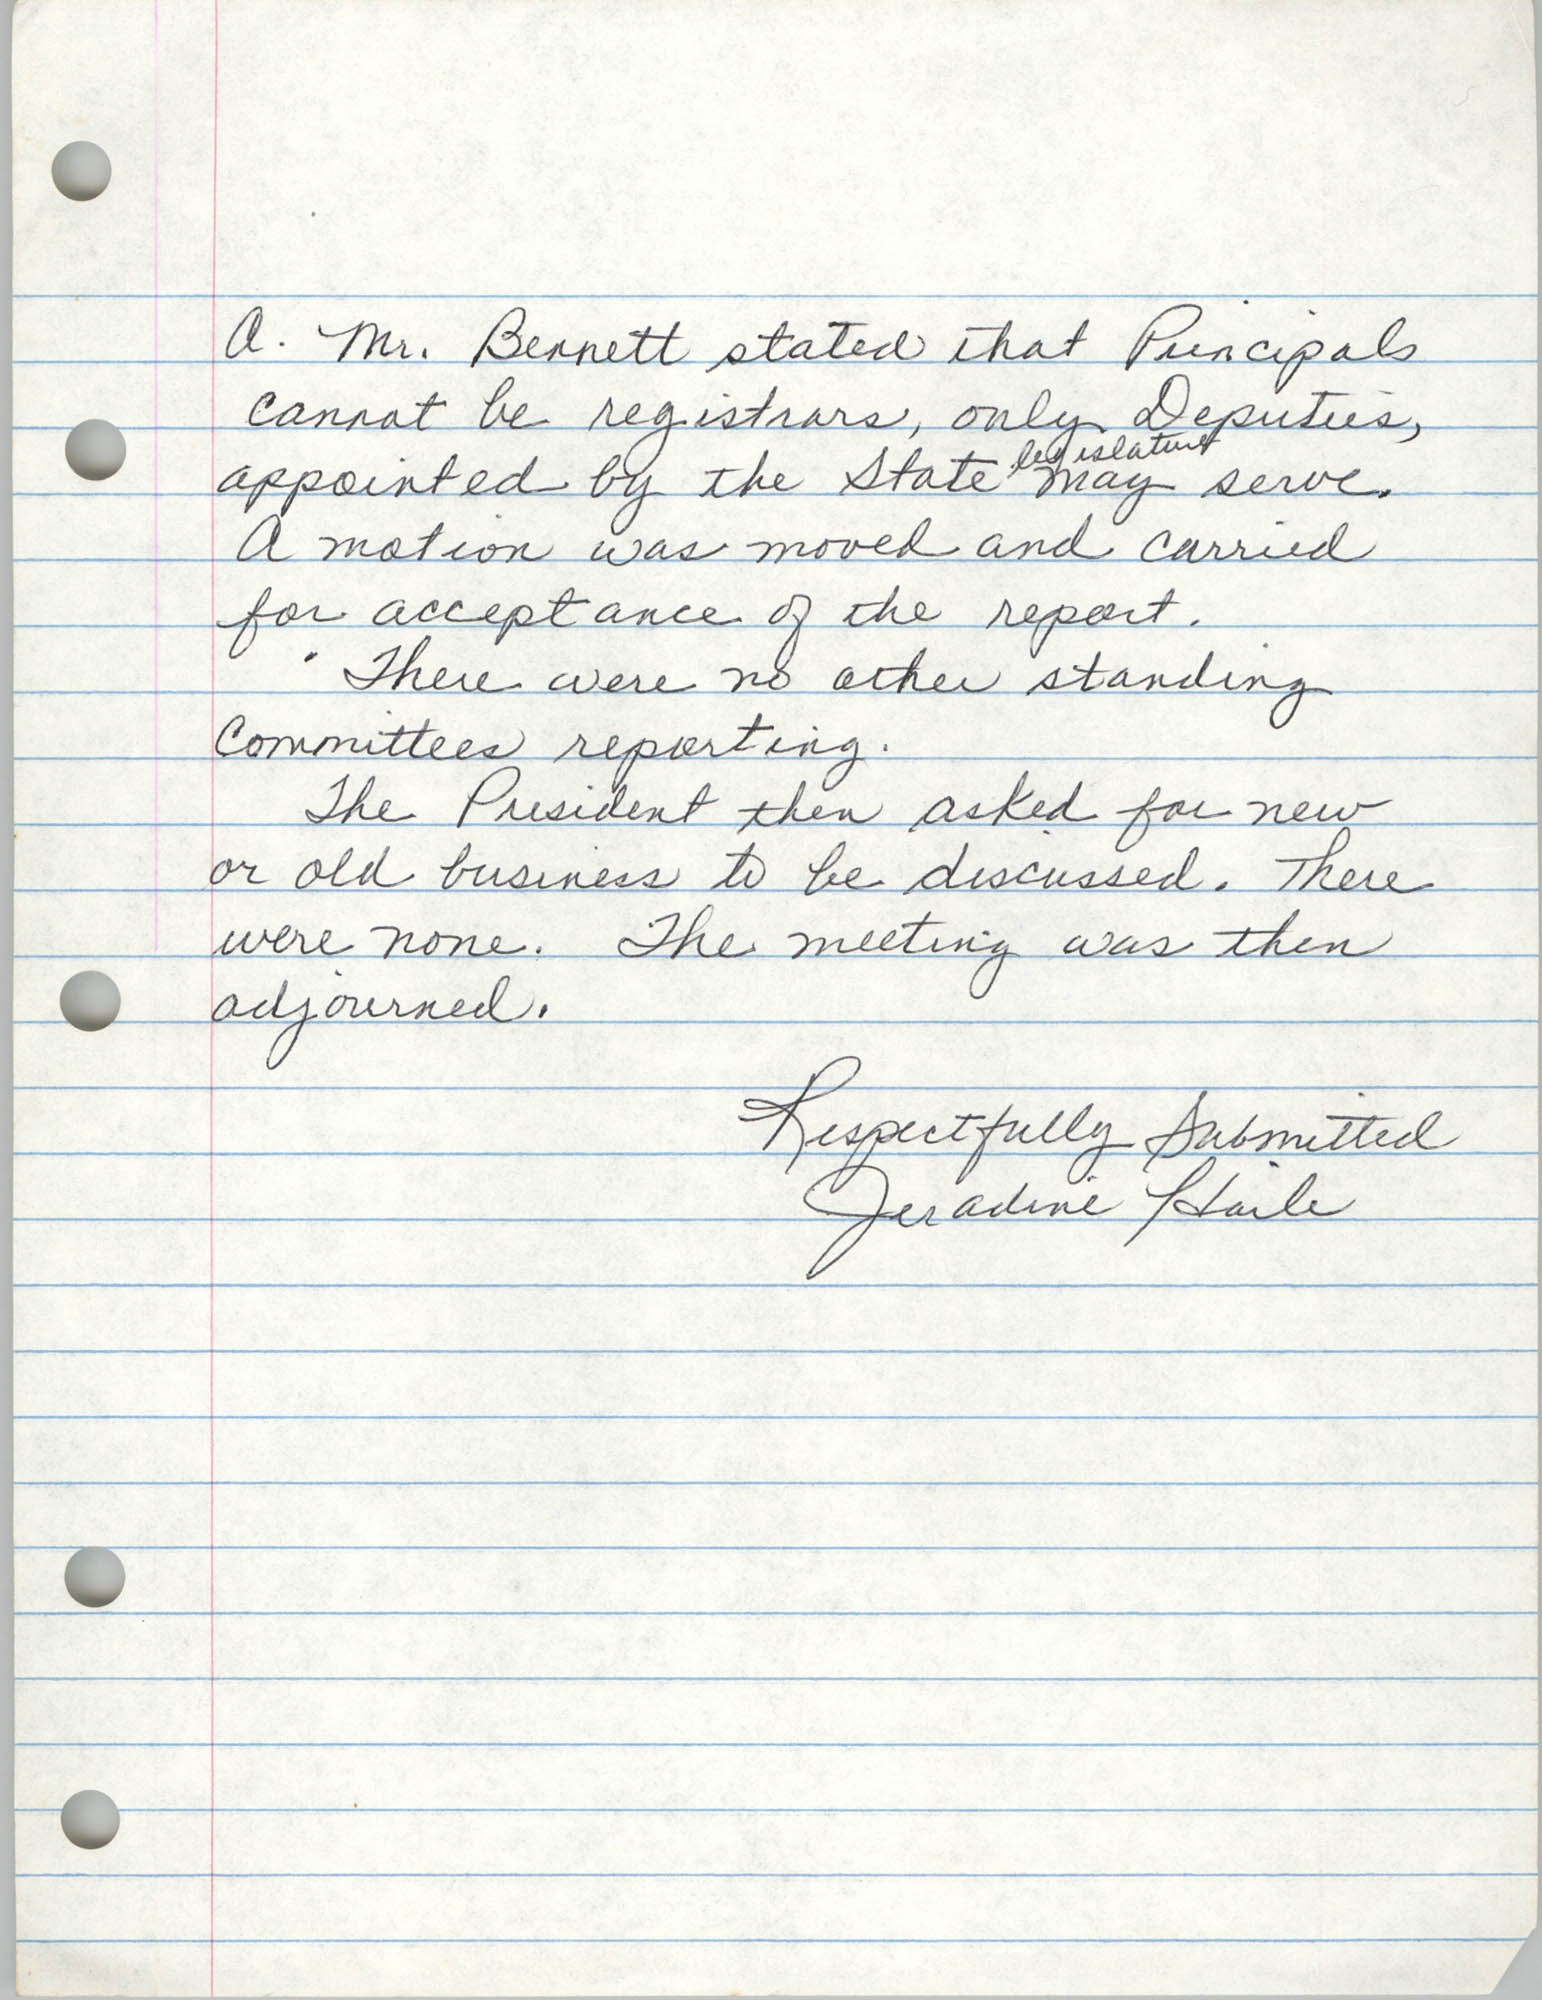 Minutes, Charleston Branch of the NAACP, General Membership Meeting, April 24, 1986, Page 8